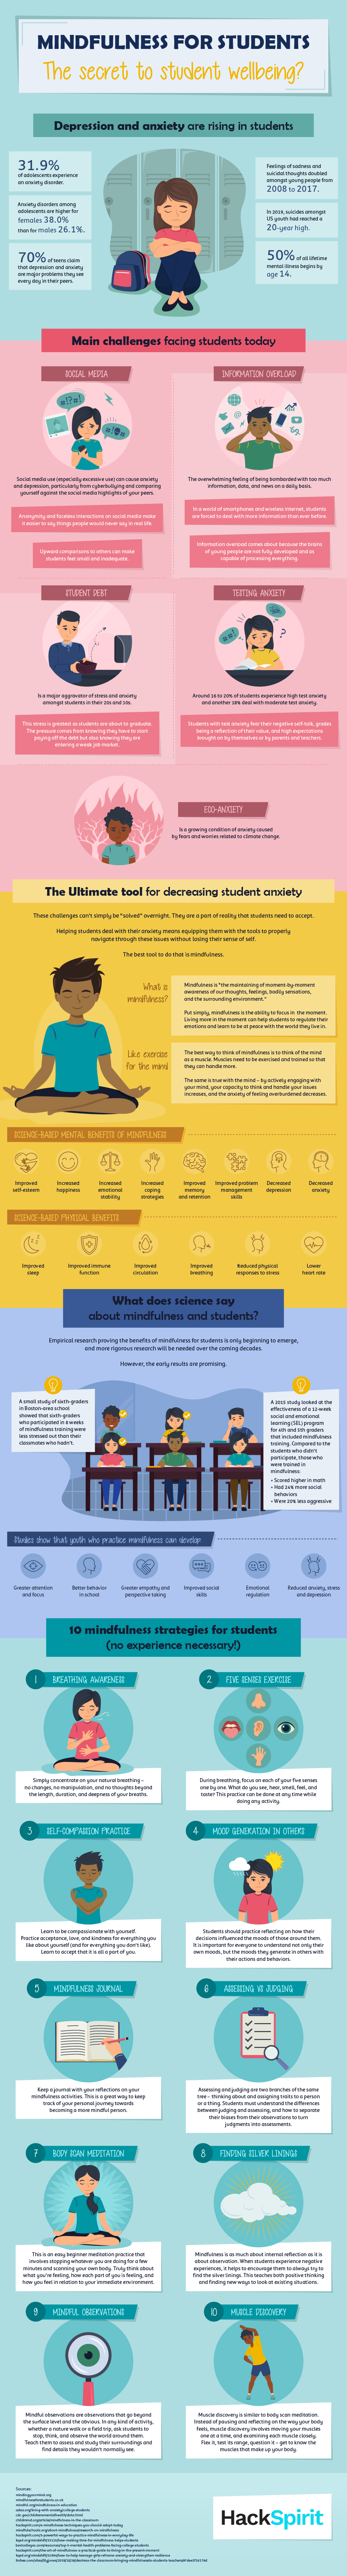 Mindfulness for students: The secret to student wellbeing?